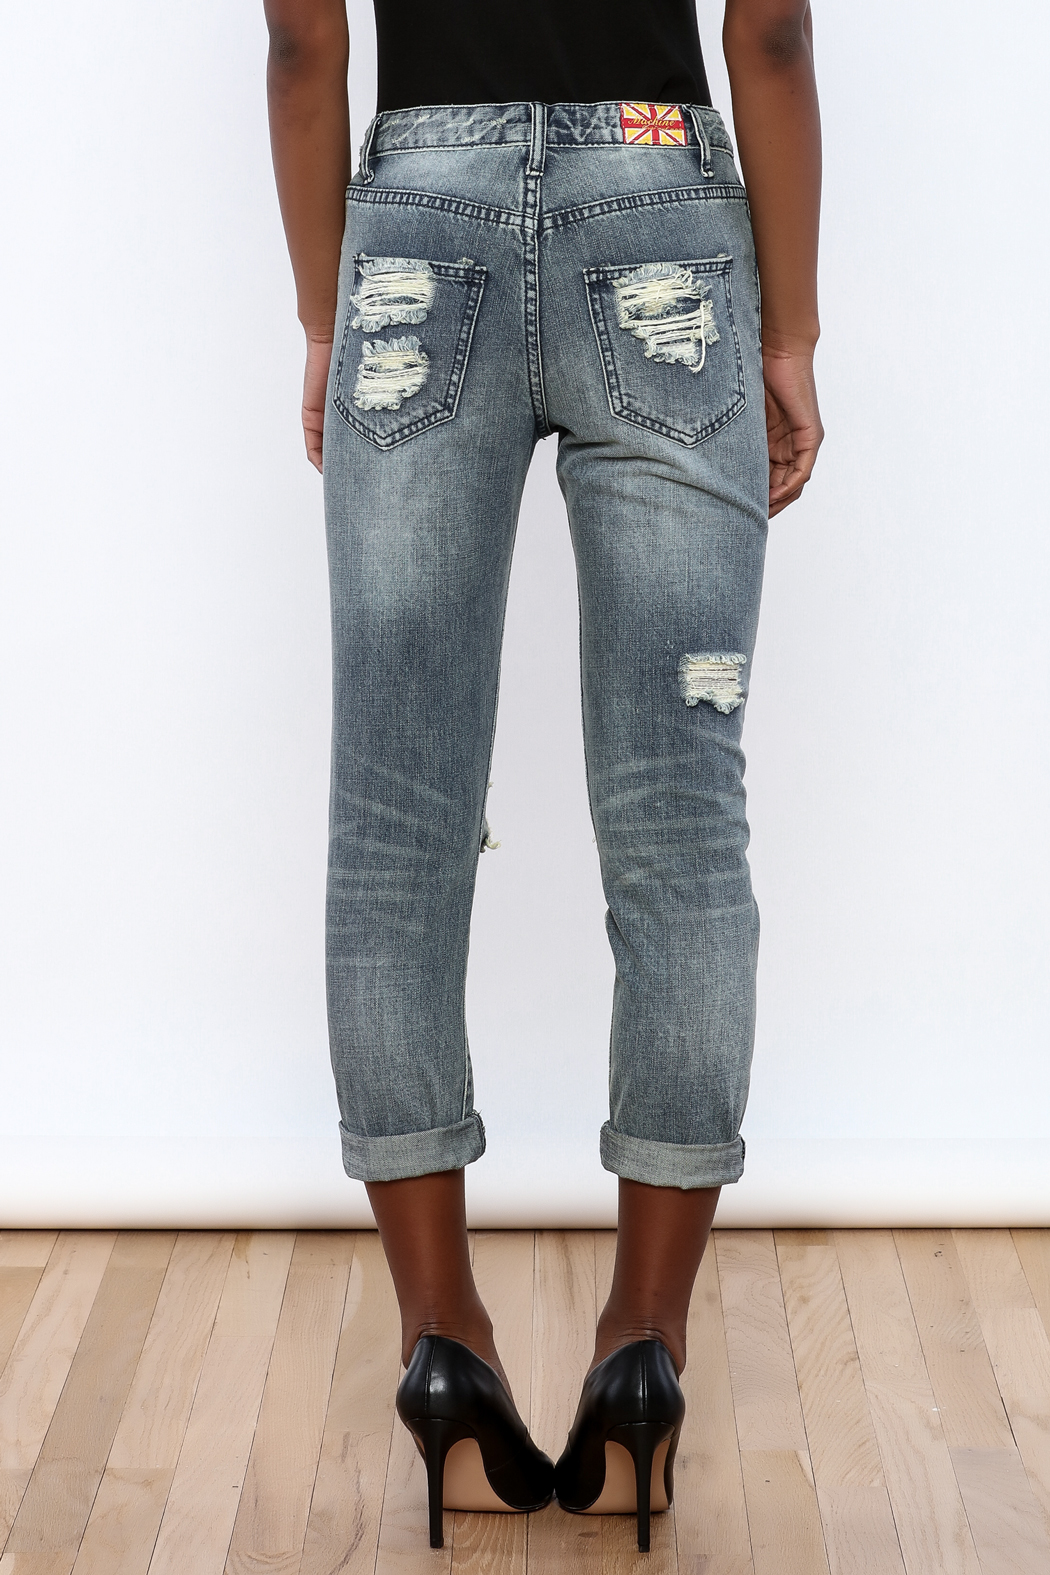 how to cut off denim jeans